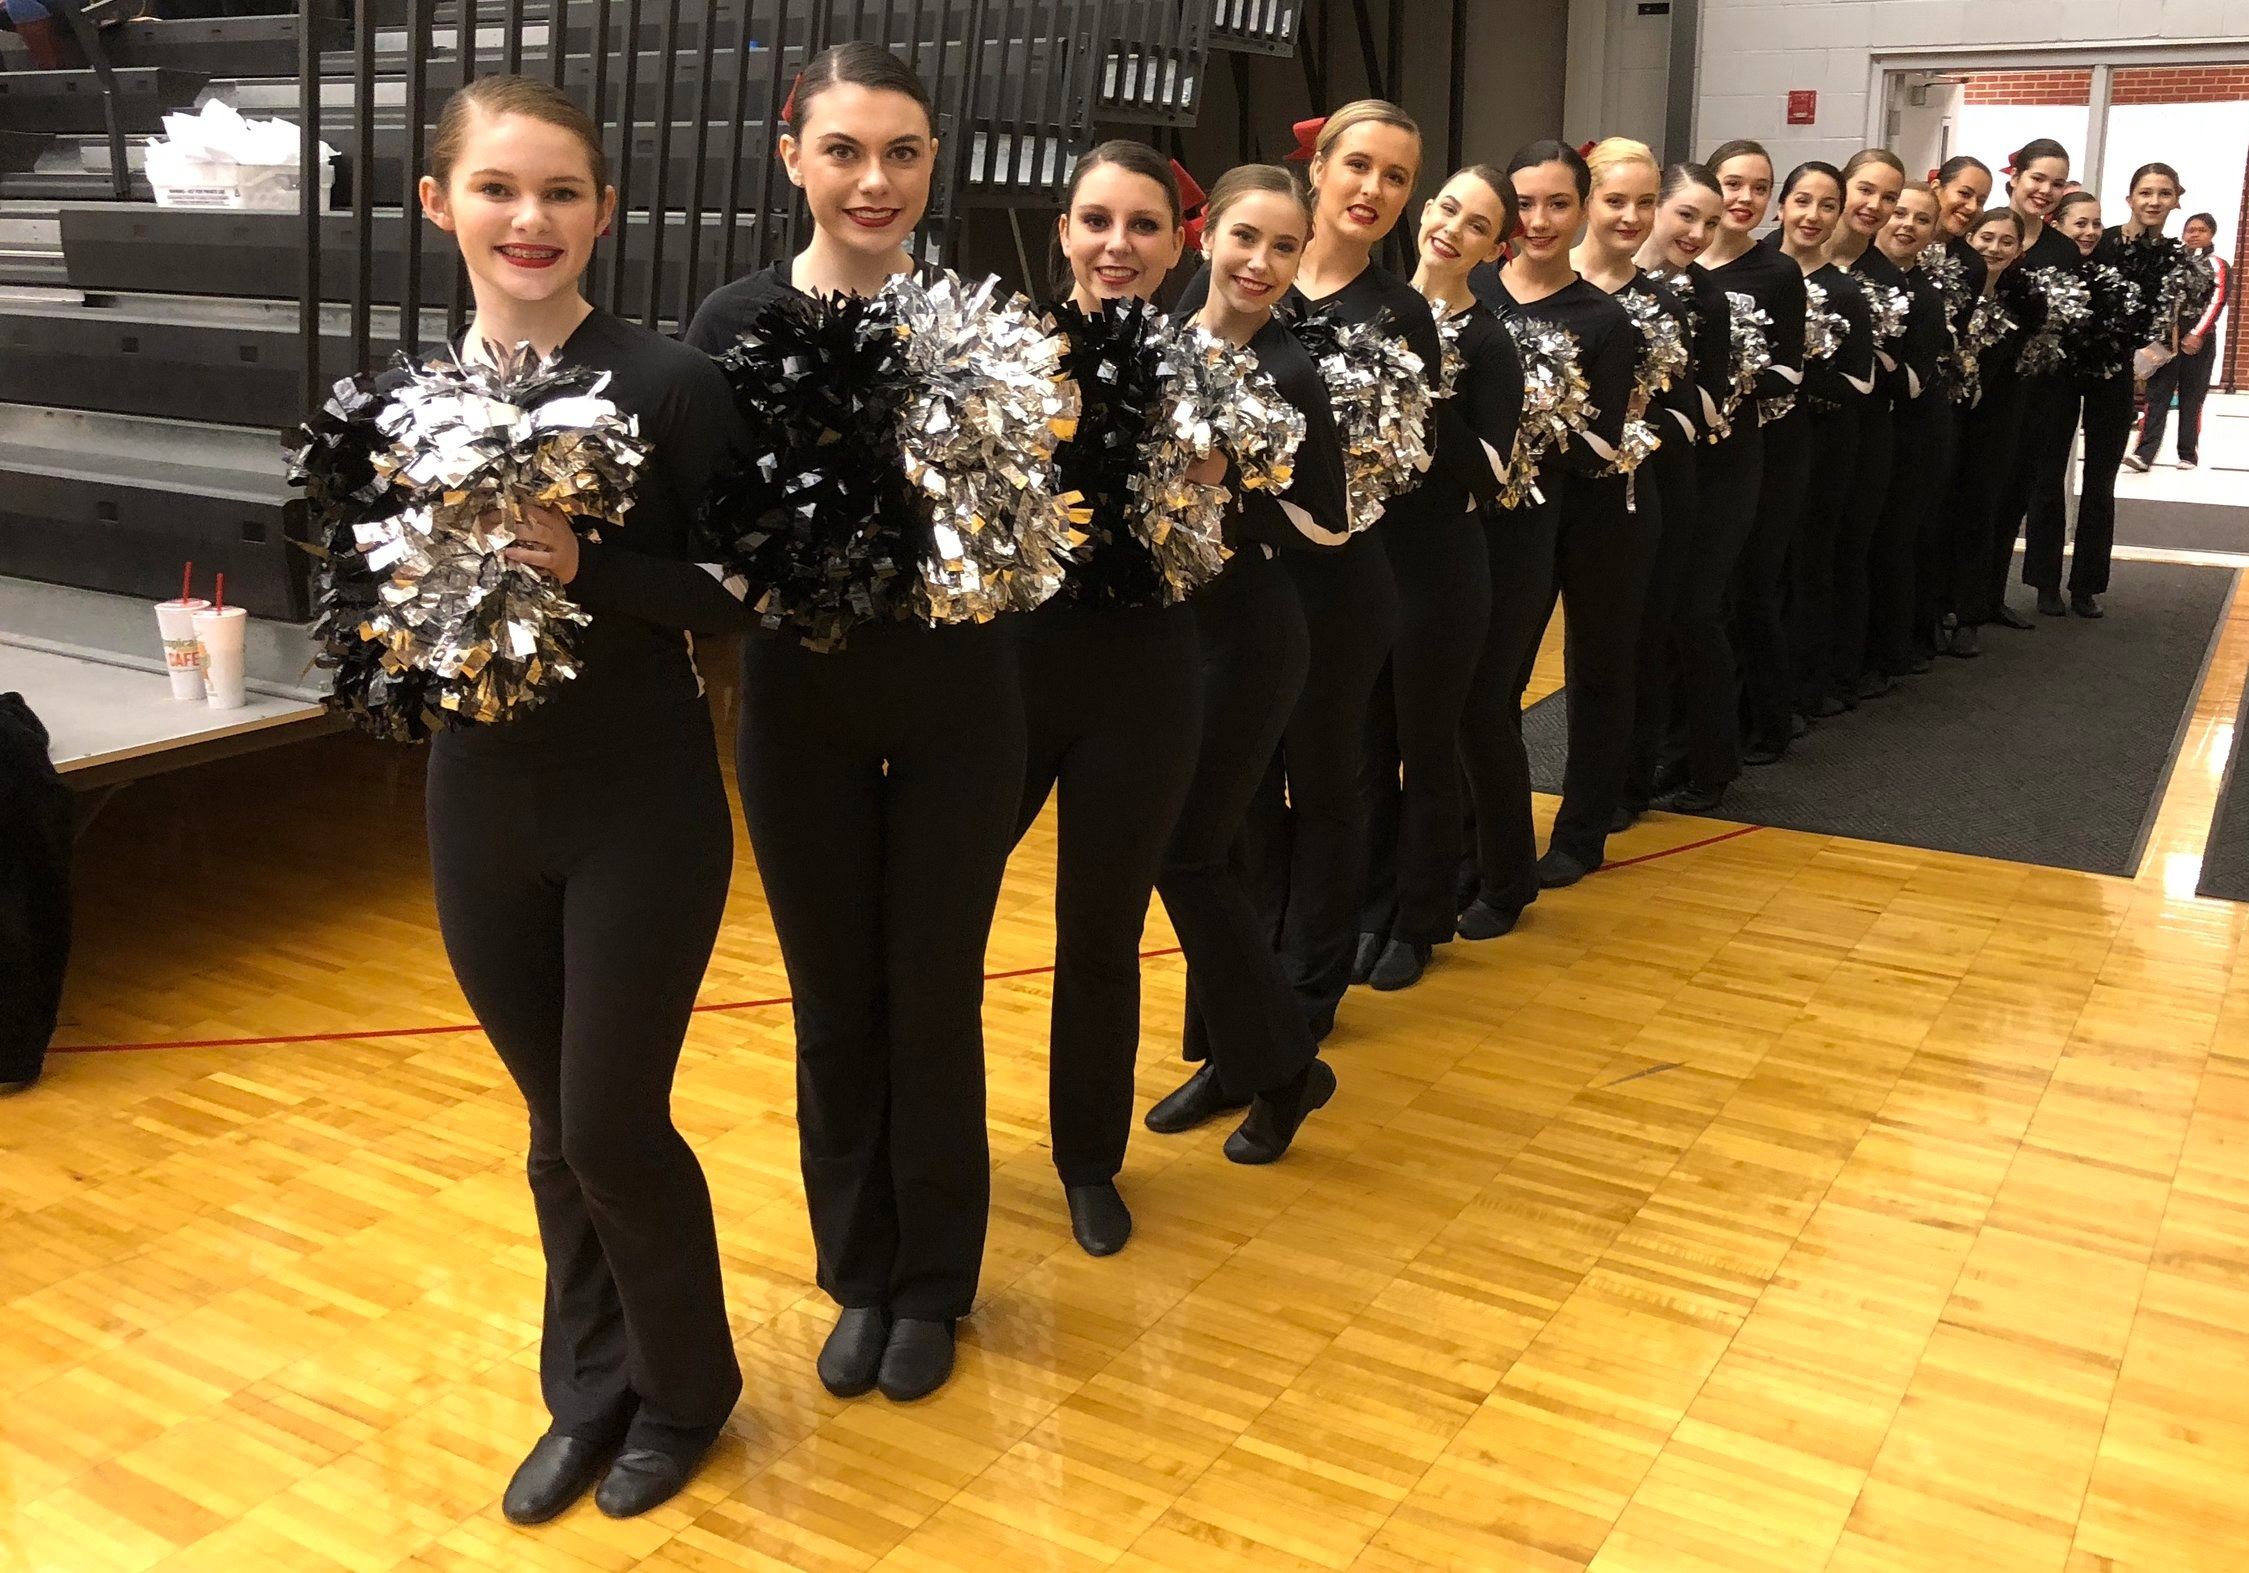 On Thursday, December 13th the Lutheran Westland Poms had their first ever performance!